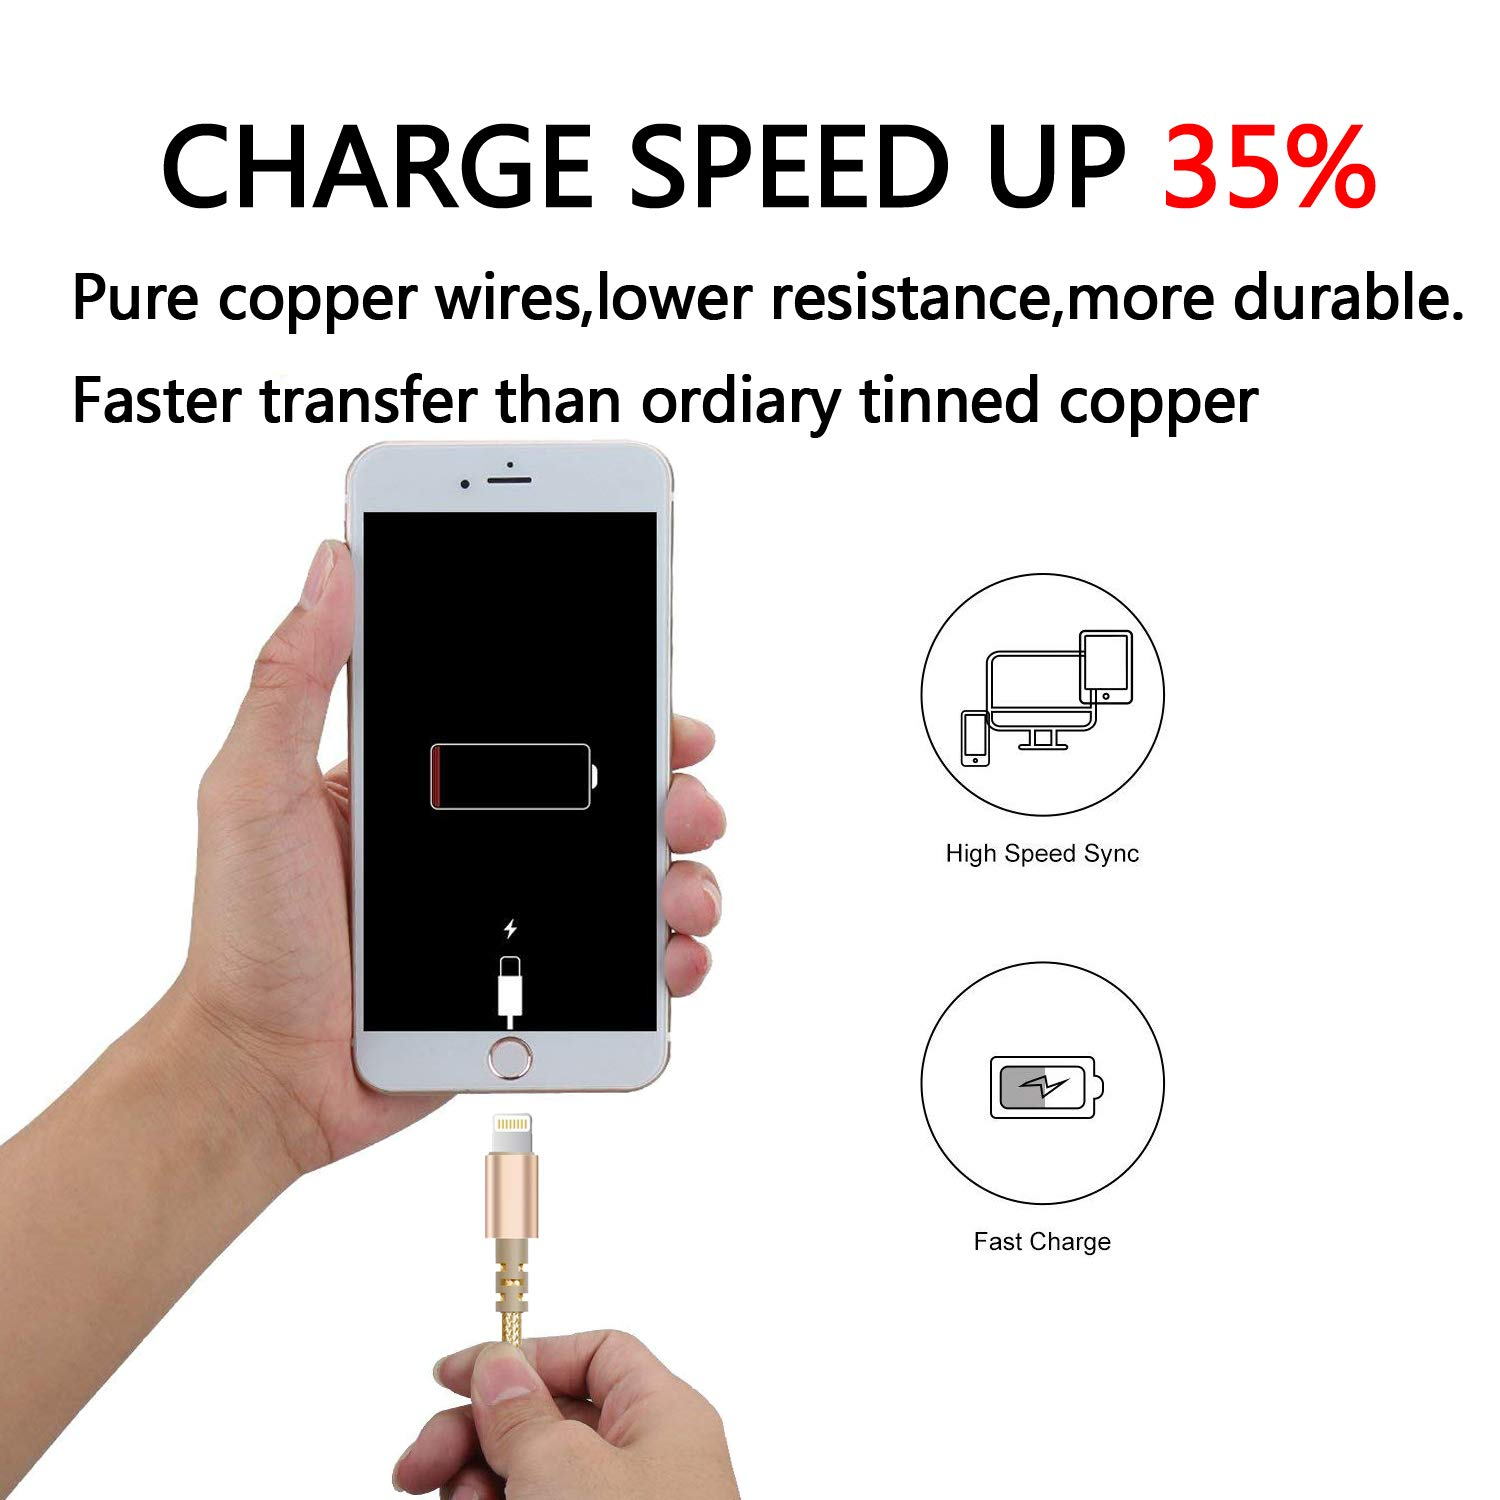 Dapaidannylon Braided Usb Cable 3pack 6ft Fast Copper Wiring Retina Charging Cord Compatible Iphone Charger 8 Plus 7 6 6s 5s 5c